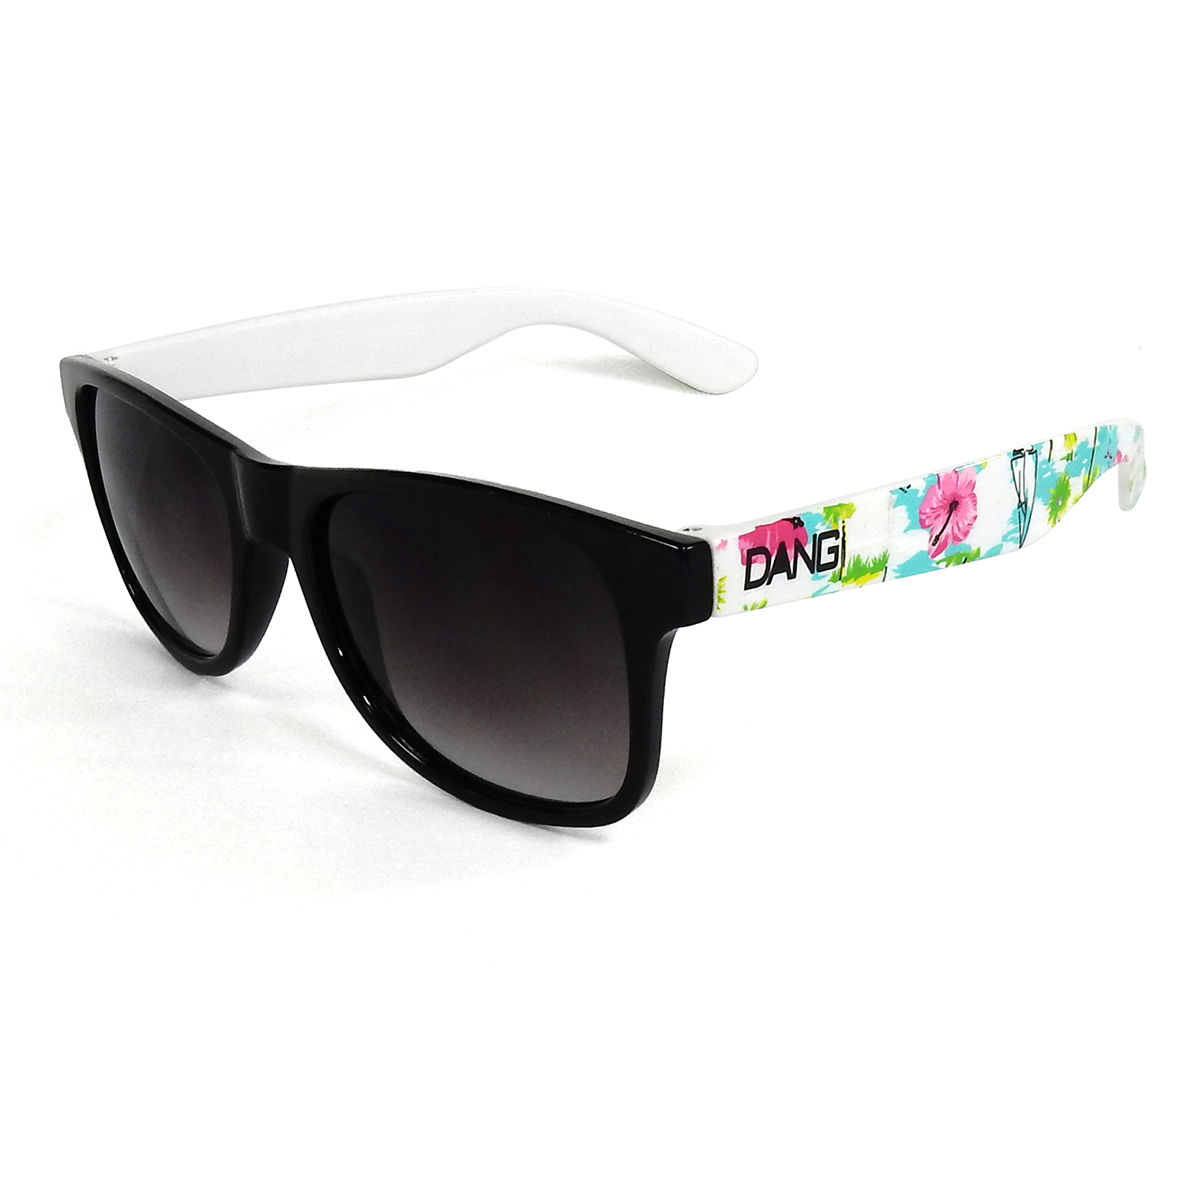 【DANG SHADES】LOCO Black Gloss / Hawaiian×Gray Gradation Aloha Wave collaboration